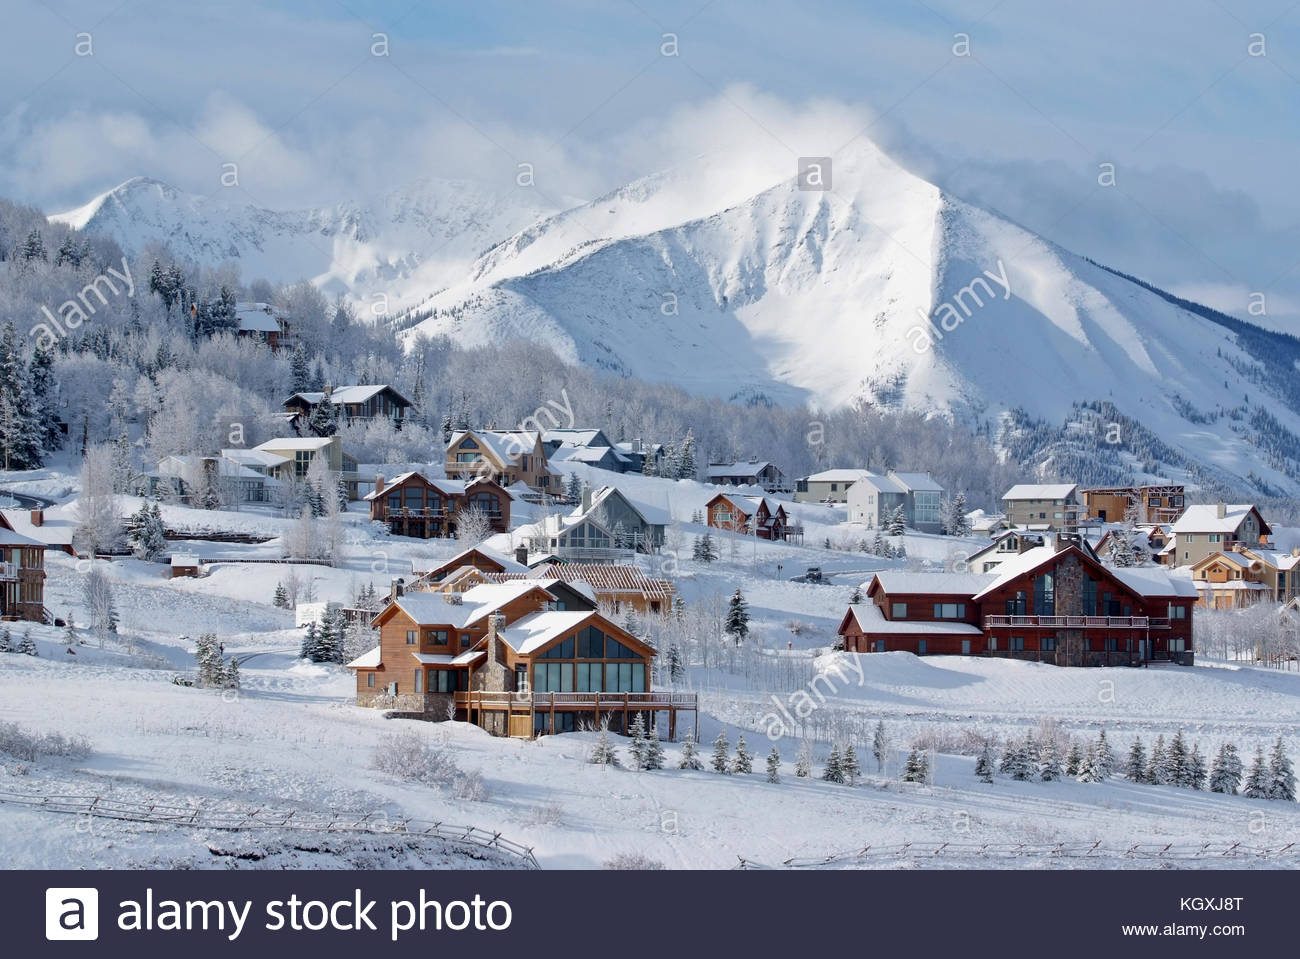 Early morning sun lights homes in Mount Crested Butte, Colorado with Whetstone Mountain in the distance. Stock Photo